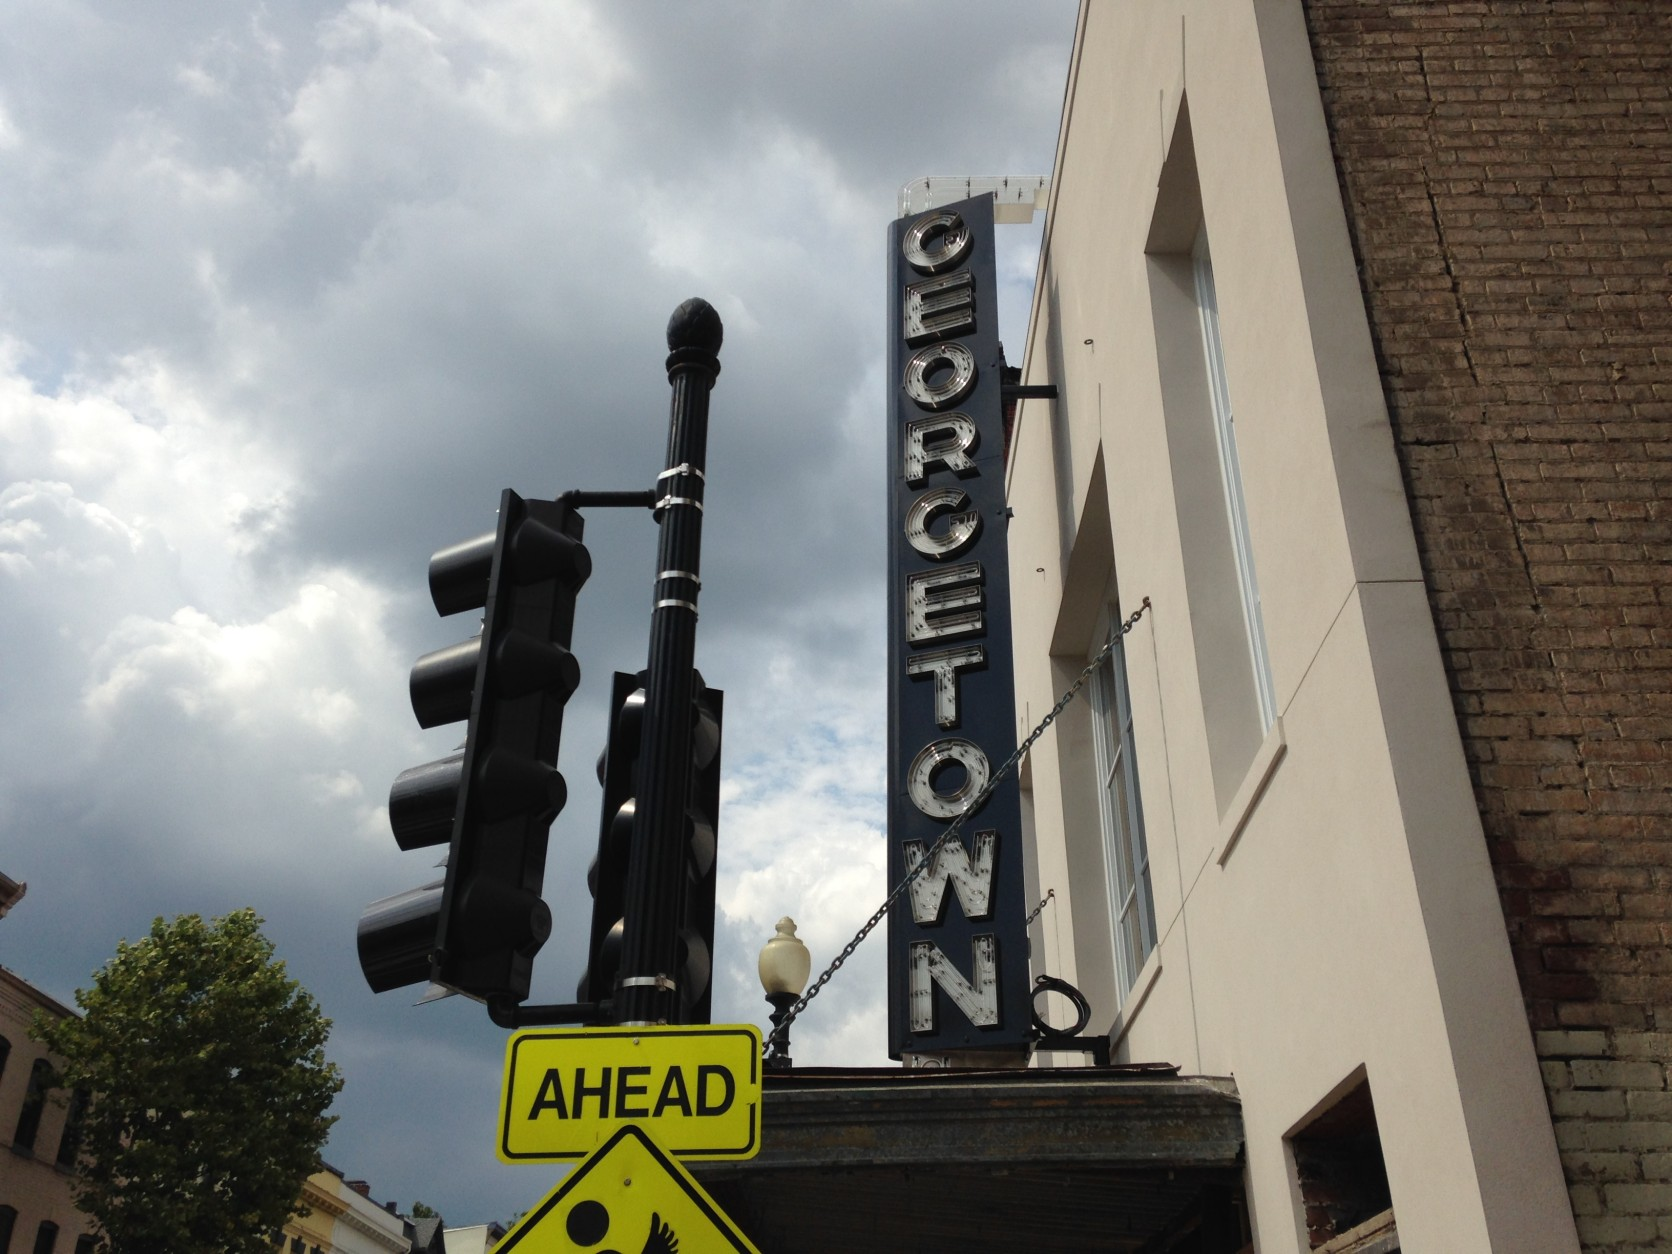 The Georgetown Theater's neon sign, which had been taken down for restoration, was reinstalled Wednesday in its familiar place above Wisconsin Avenue. (WTOP/Michelle Basch)